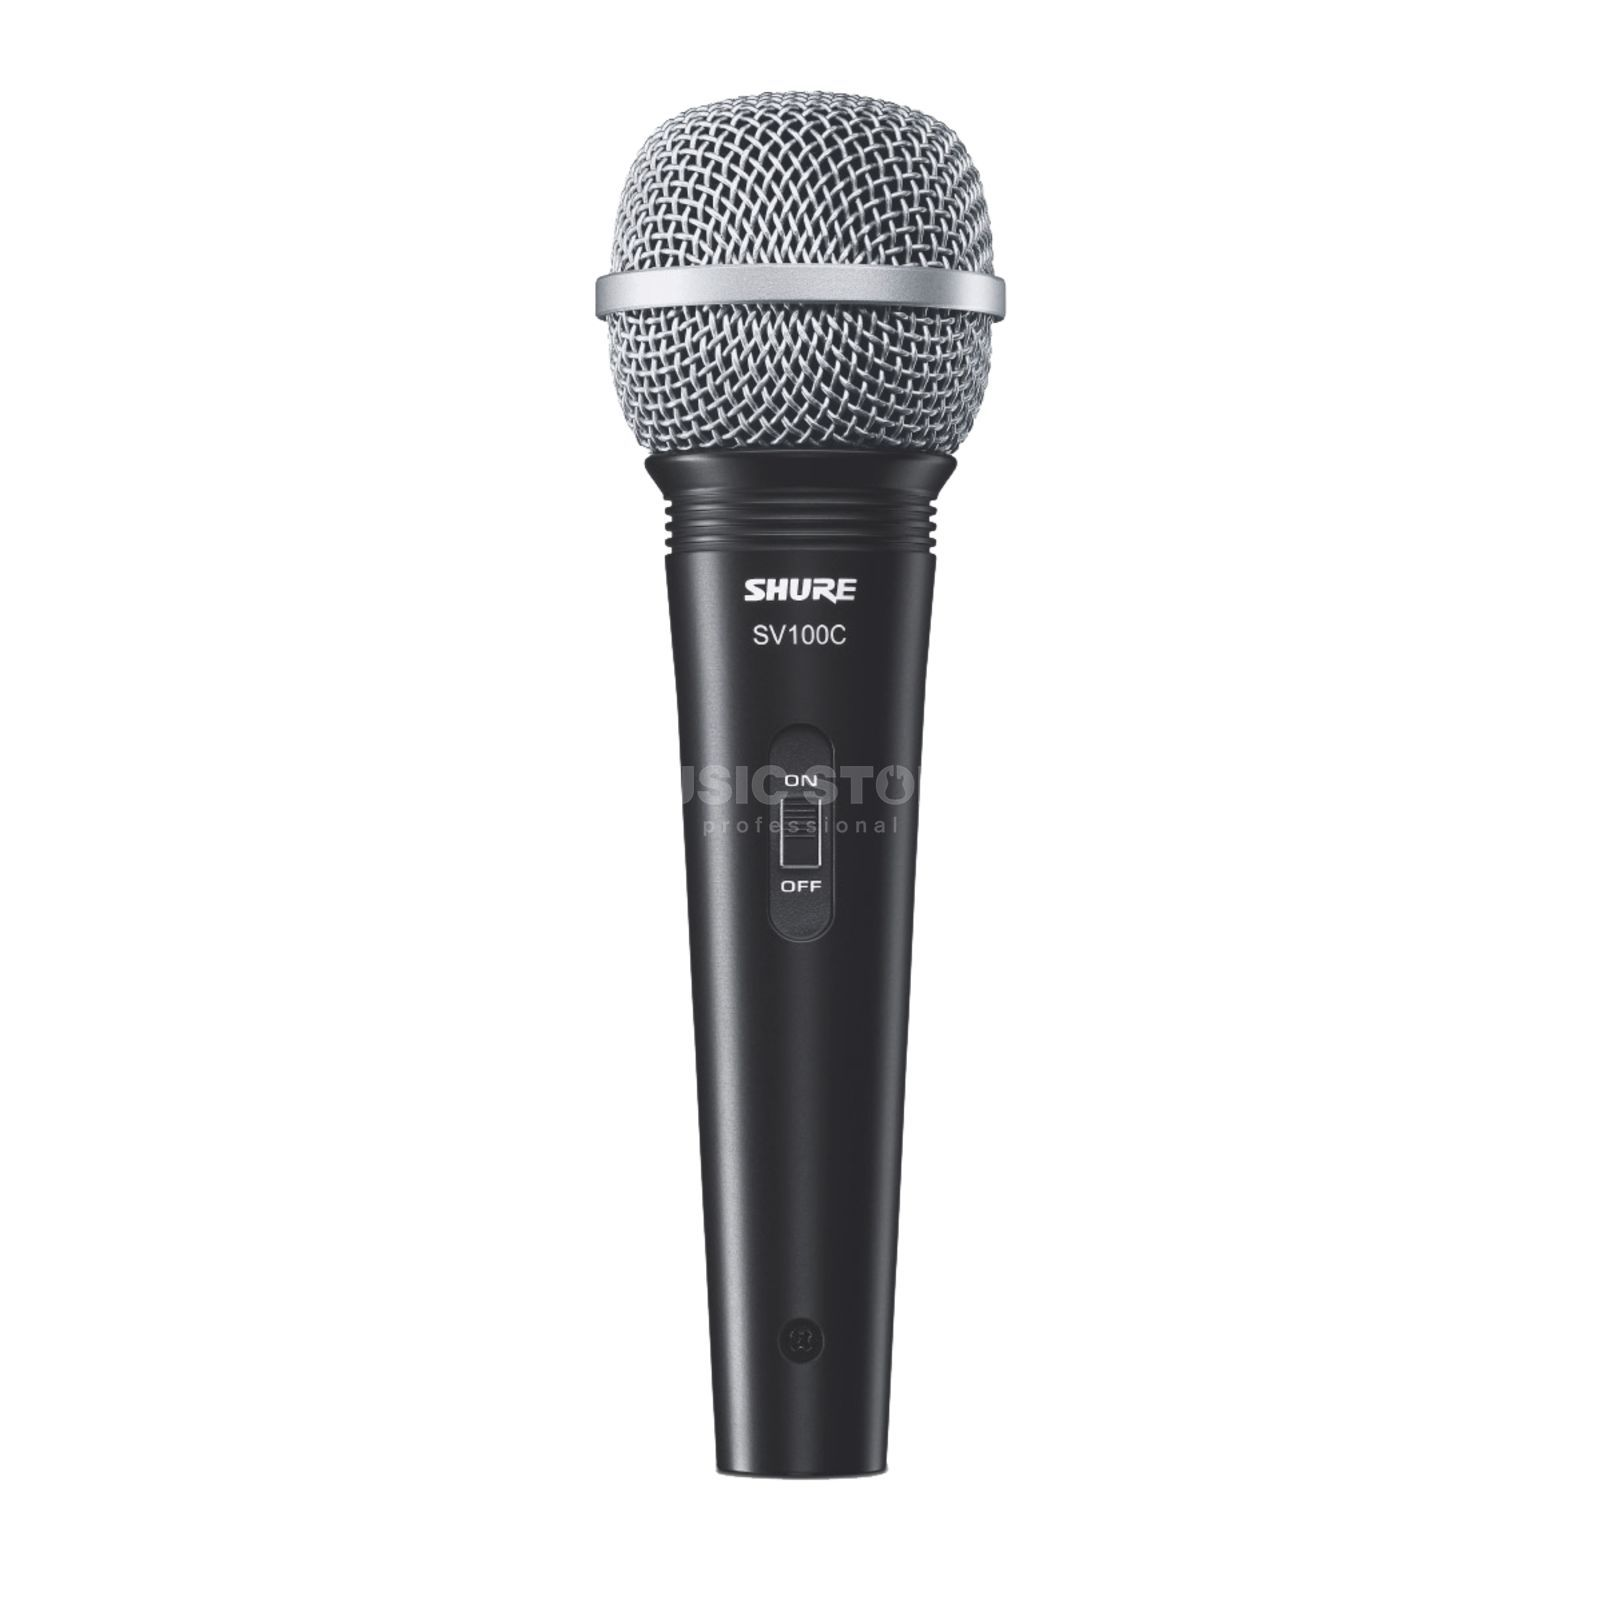 Shure SV100 Vocal Microphone incl. 4,5m XLR-Jack Cable Product Image